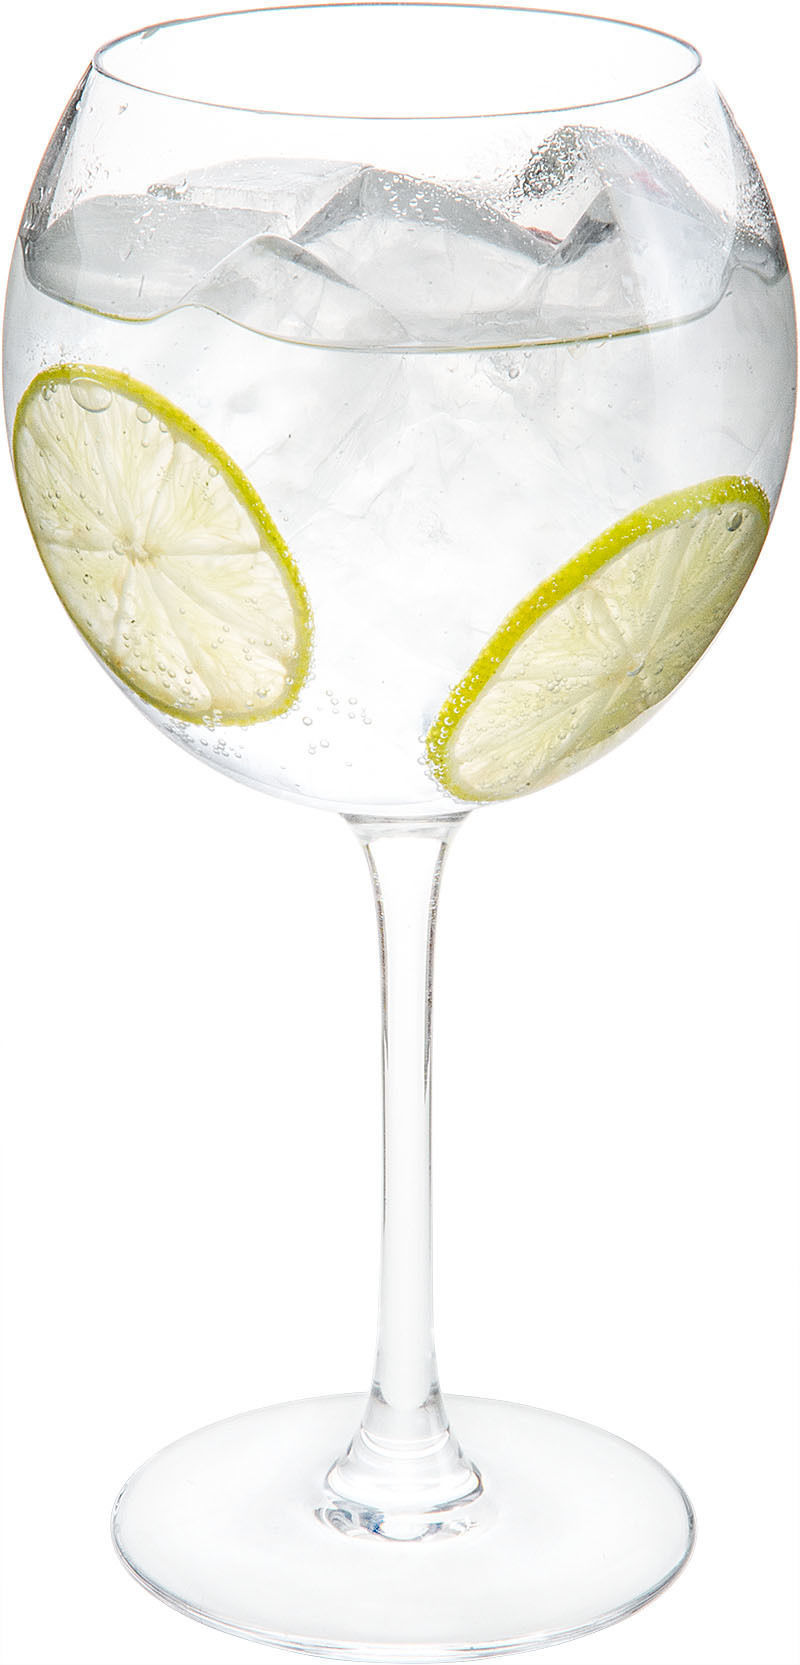 Comment préparer le cocktail Bianco Tonic